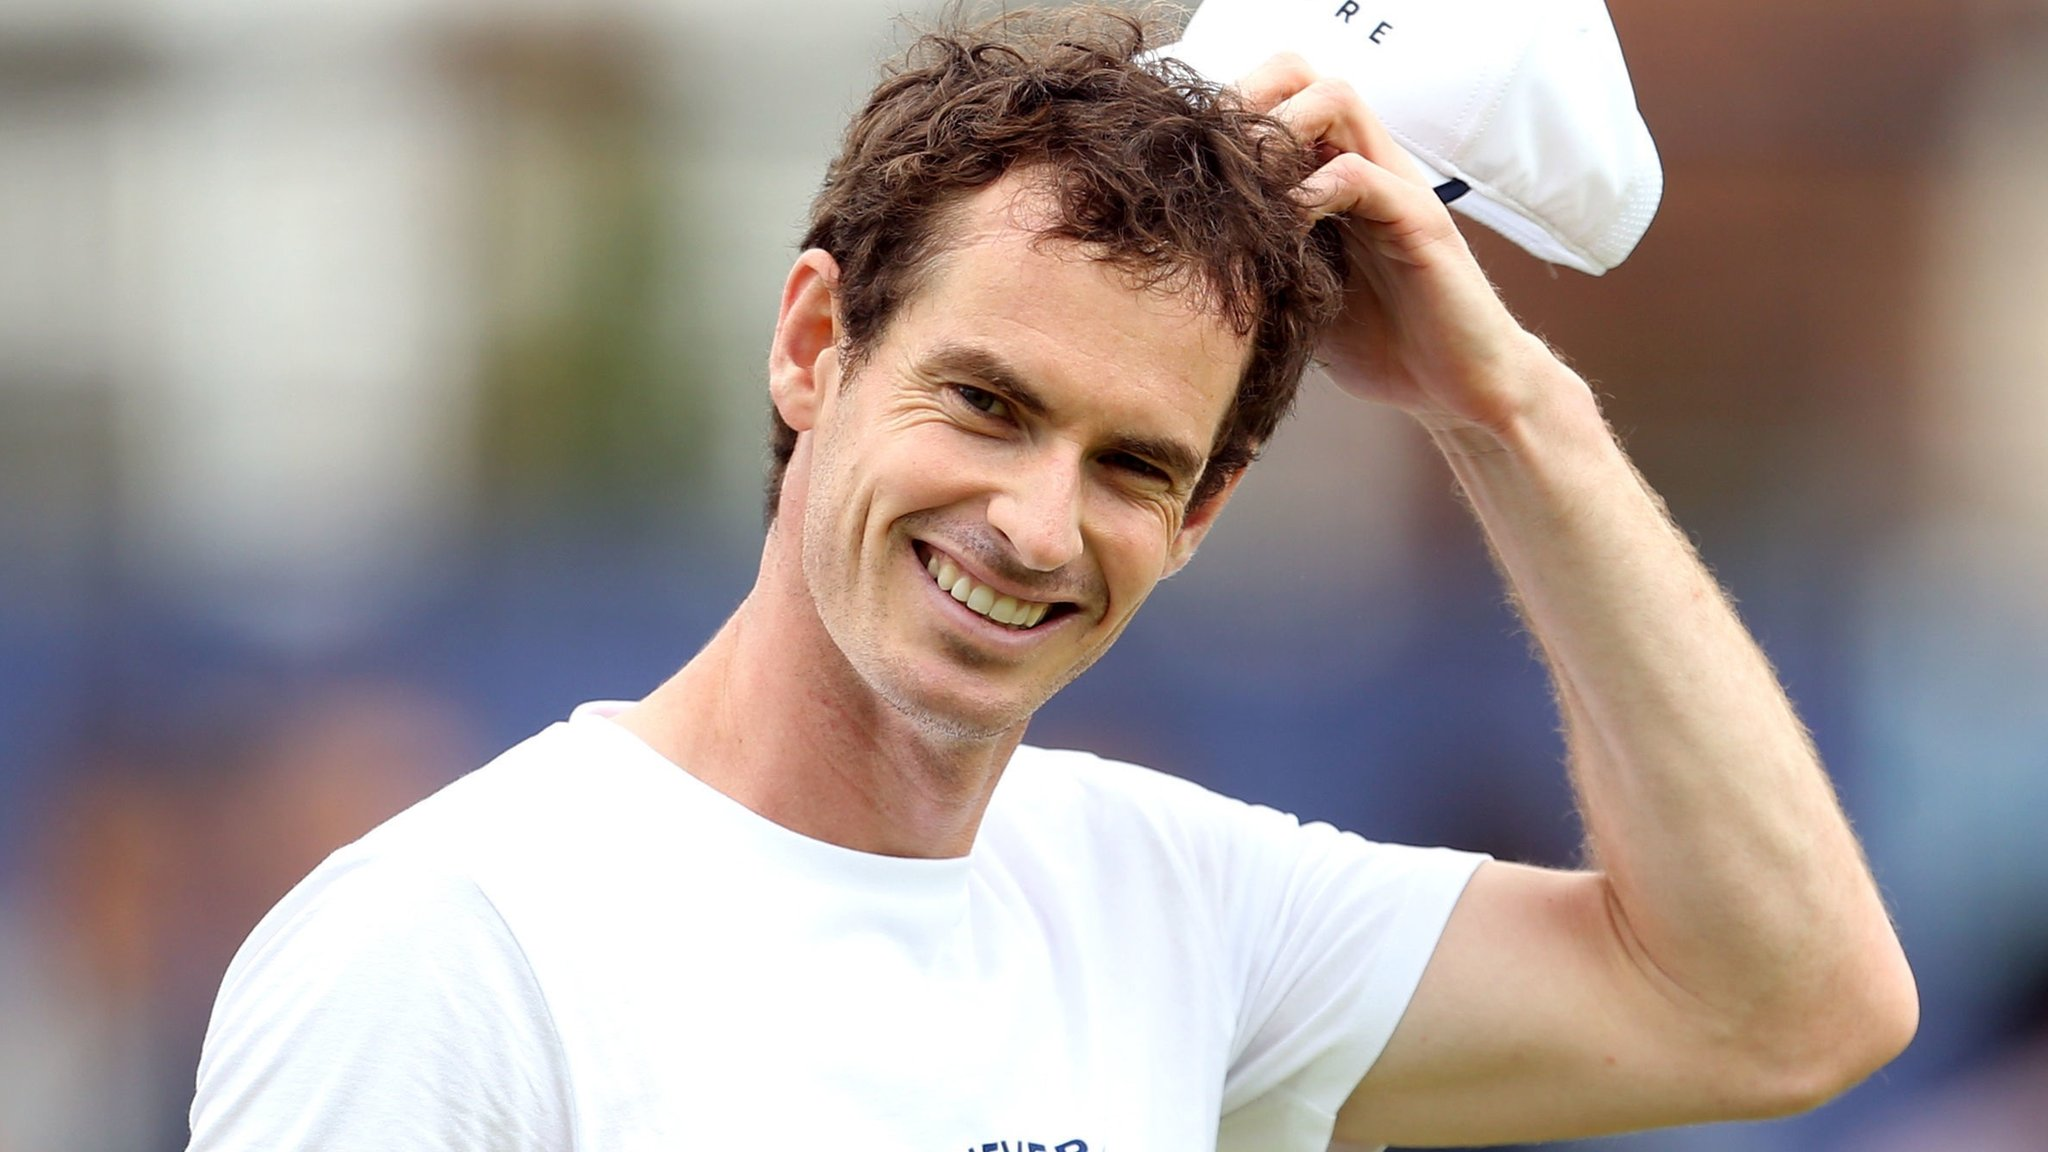 Sharapova? Flipkens? Billie Jean King!? - who should Murray play mixed doubles with at Wimbledon?